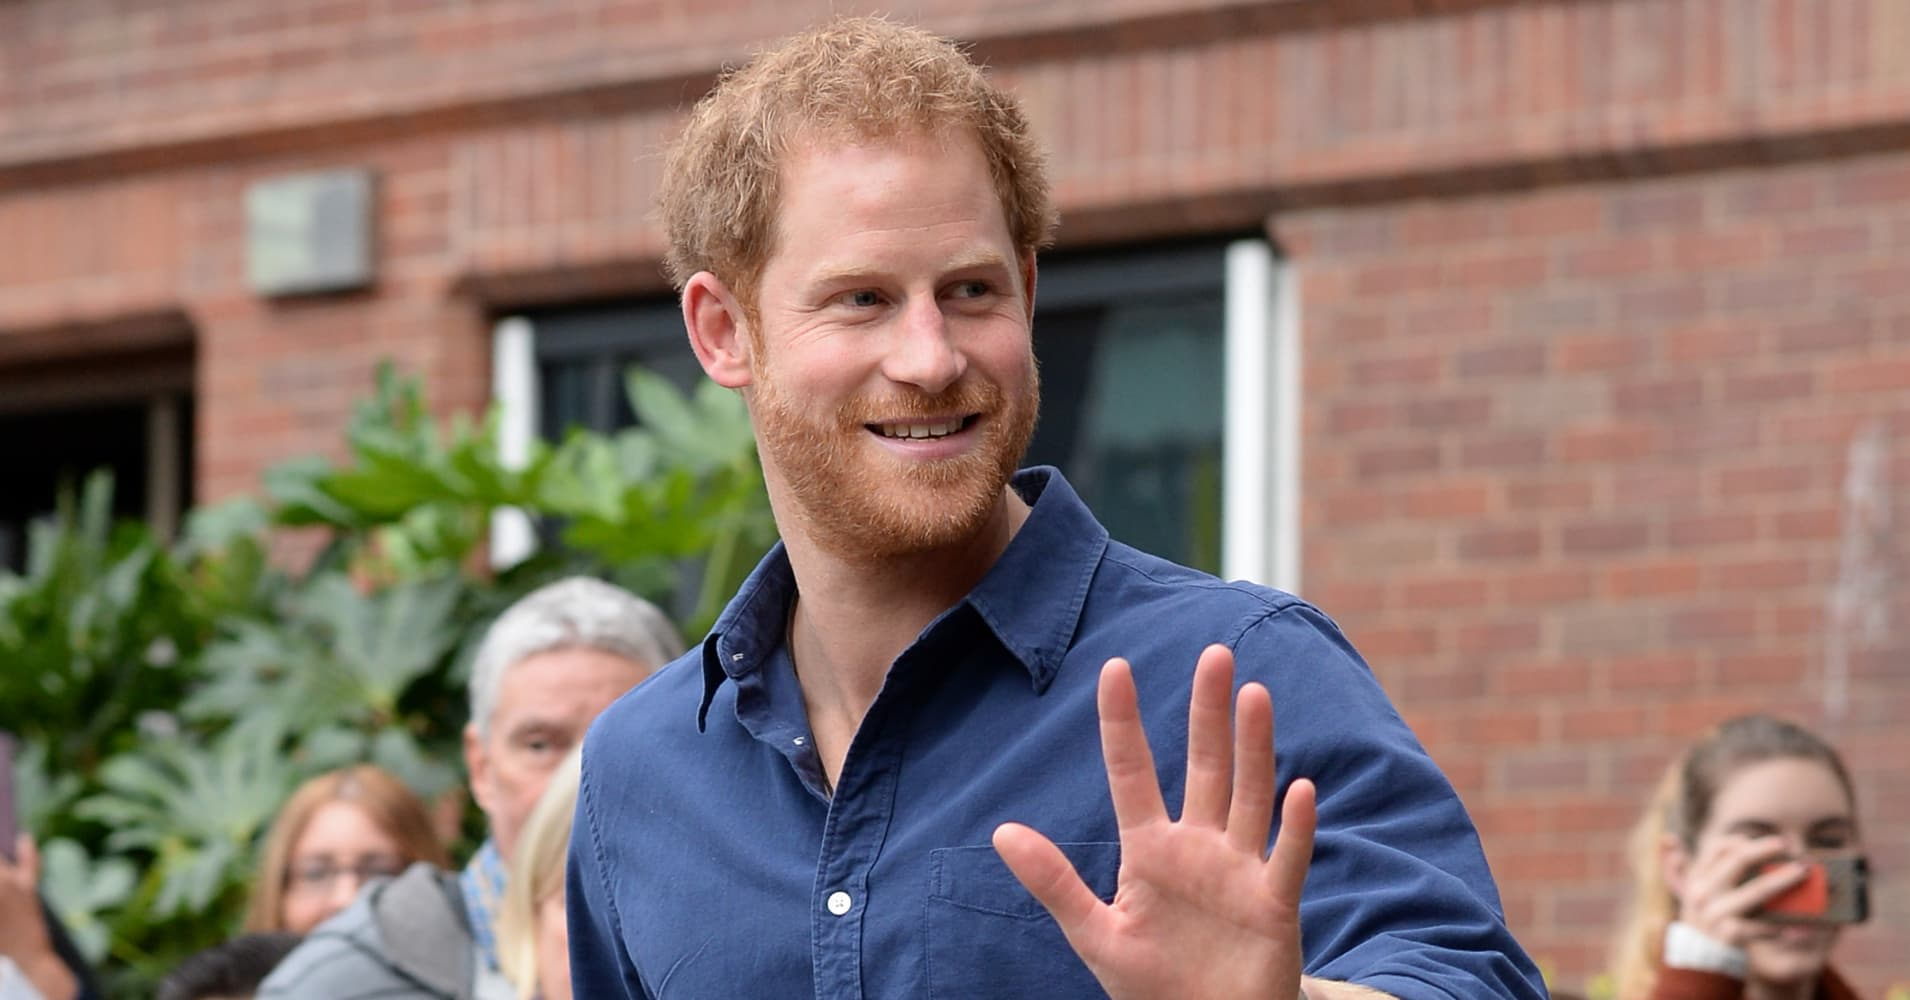 Prince Harry waves as he leaves Nottingham's new Central Police Station on October 26, 2016 in Nottingham, England.